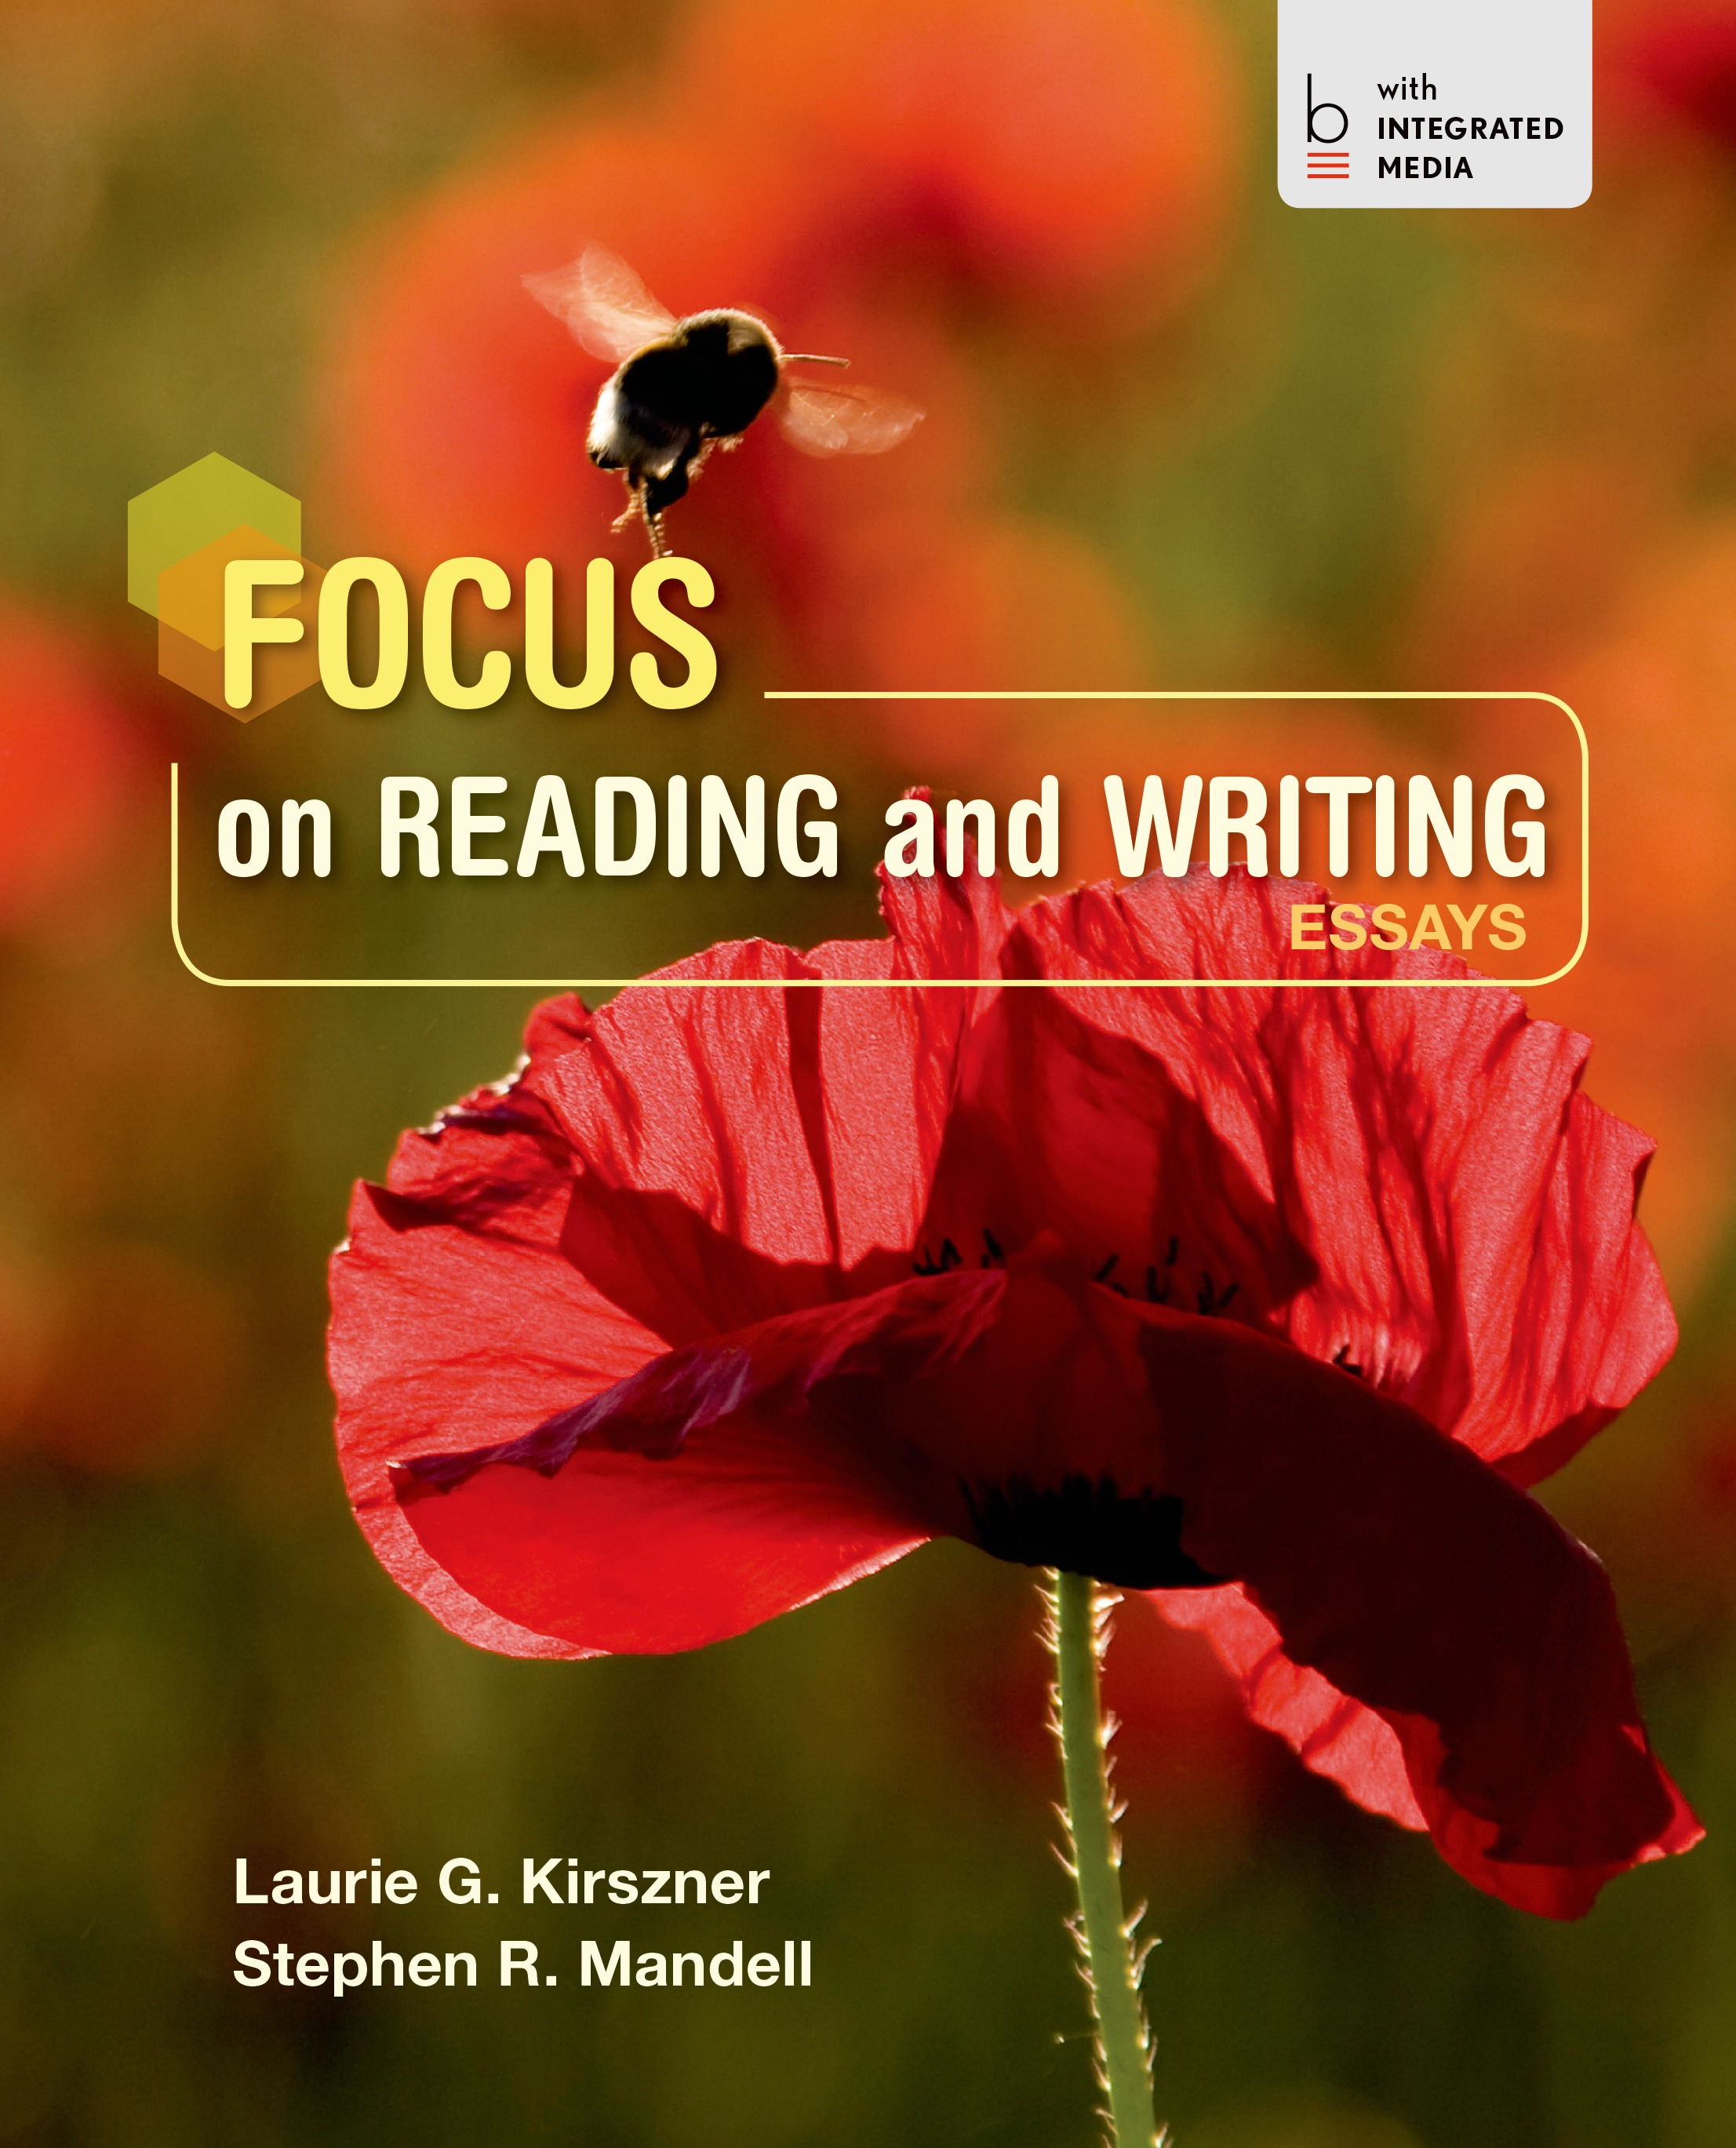 focus on reading and writing macmillan learning  image